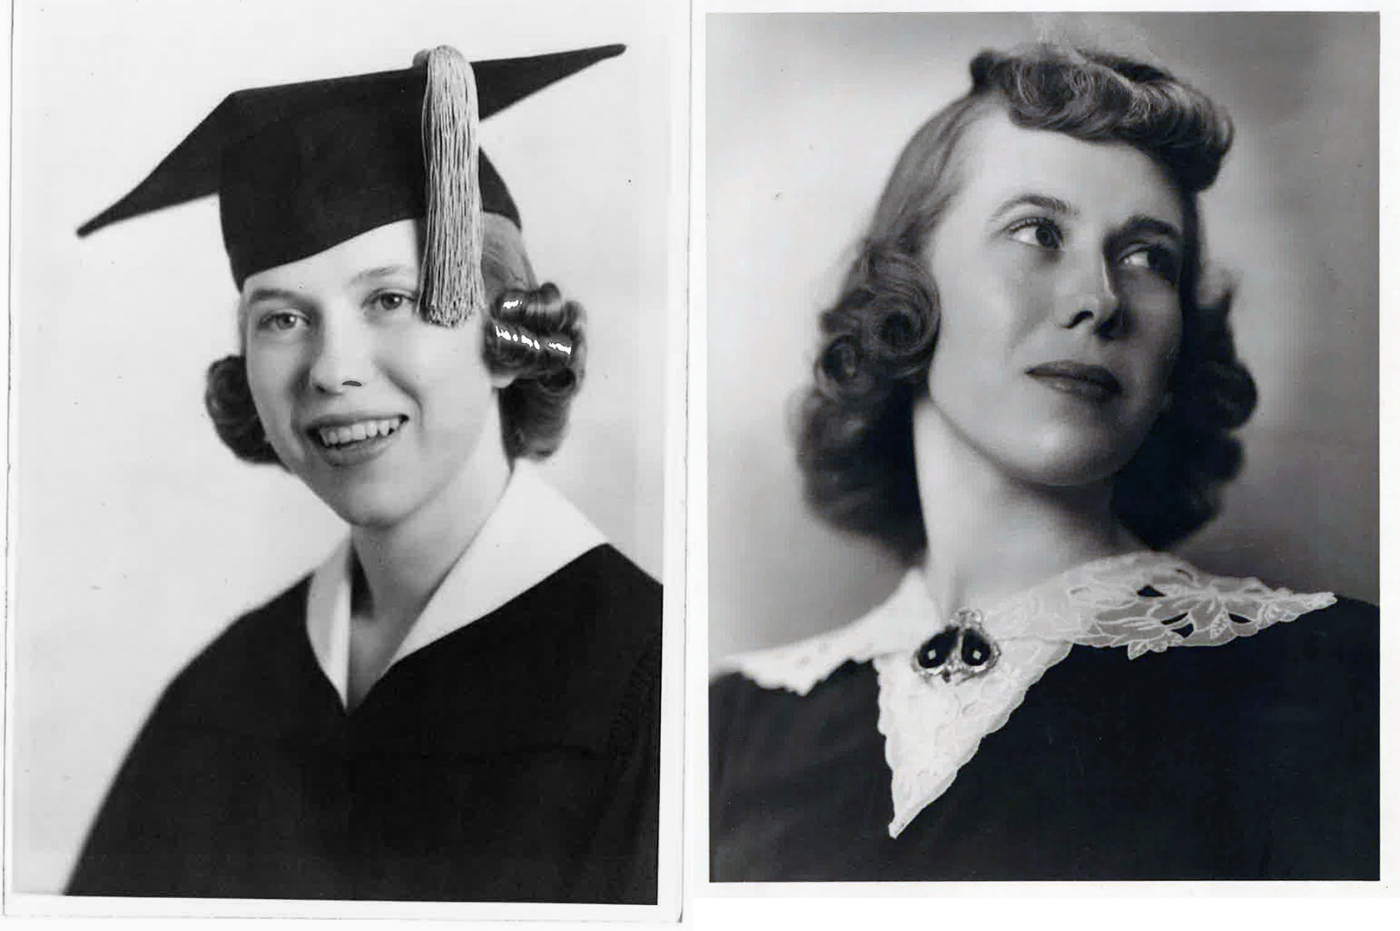 The Power of Music According to Alumna Edith Carlquist Reed, Class of 1938